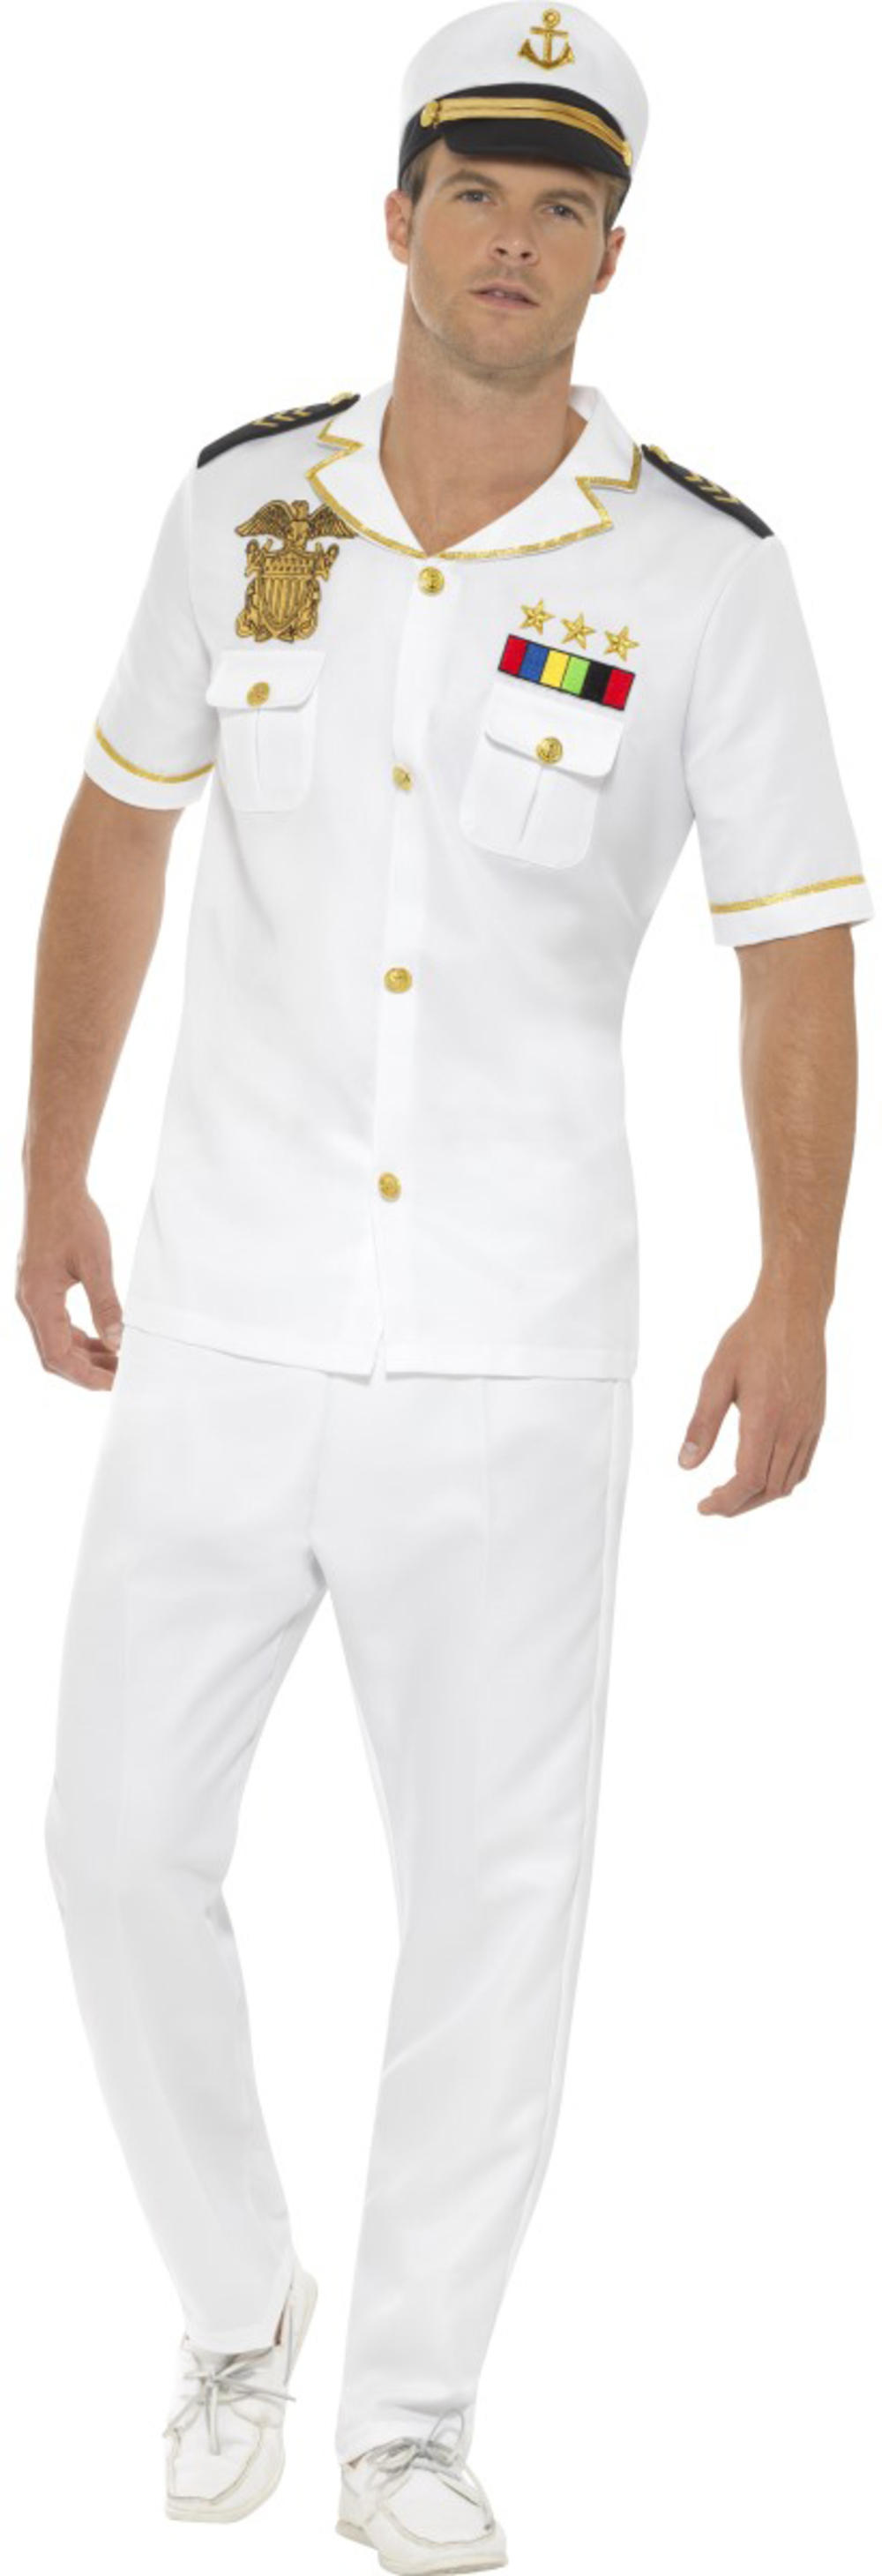 Captain Mens Fancy Dress Military Army Navy Uniform Occupation Adults Costume